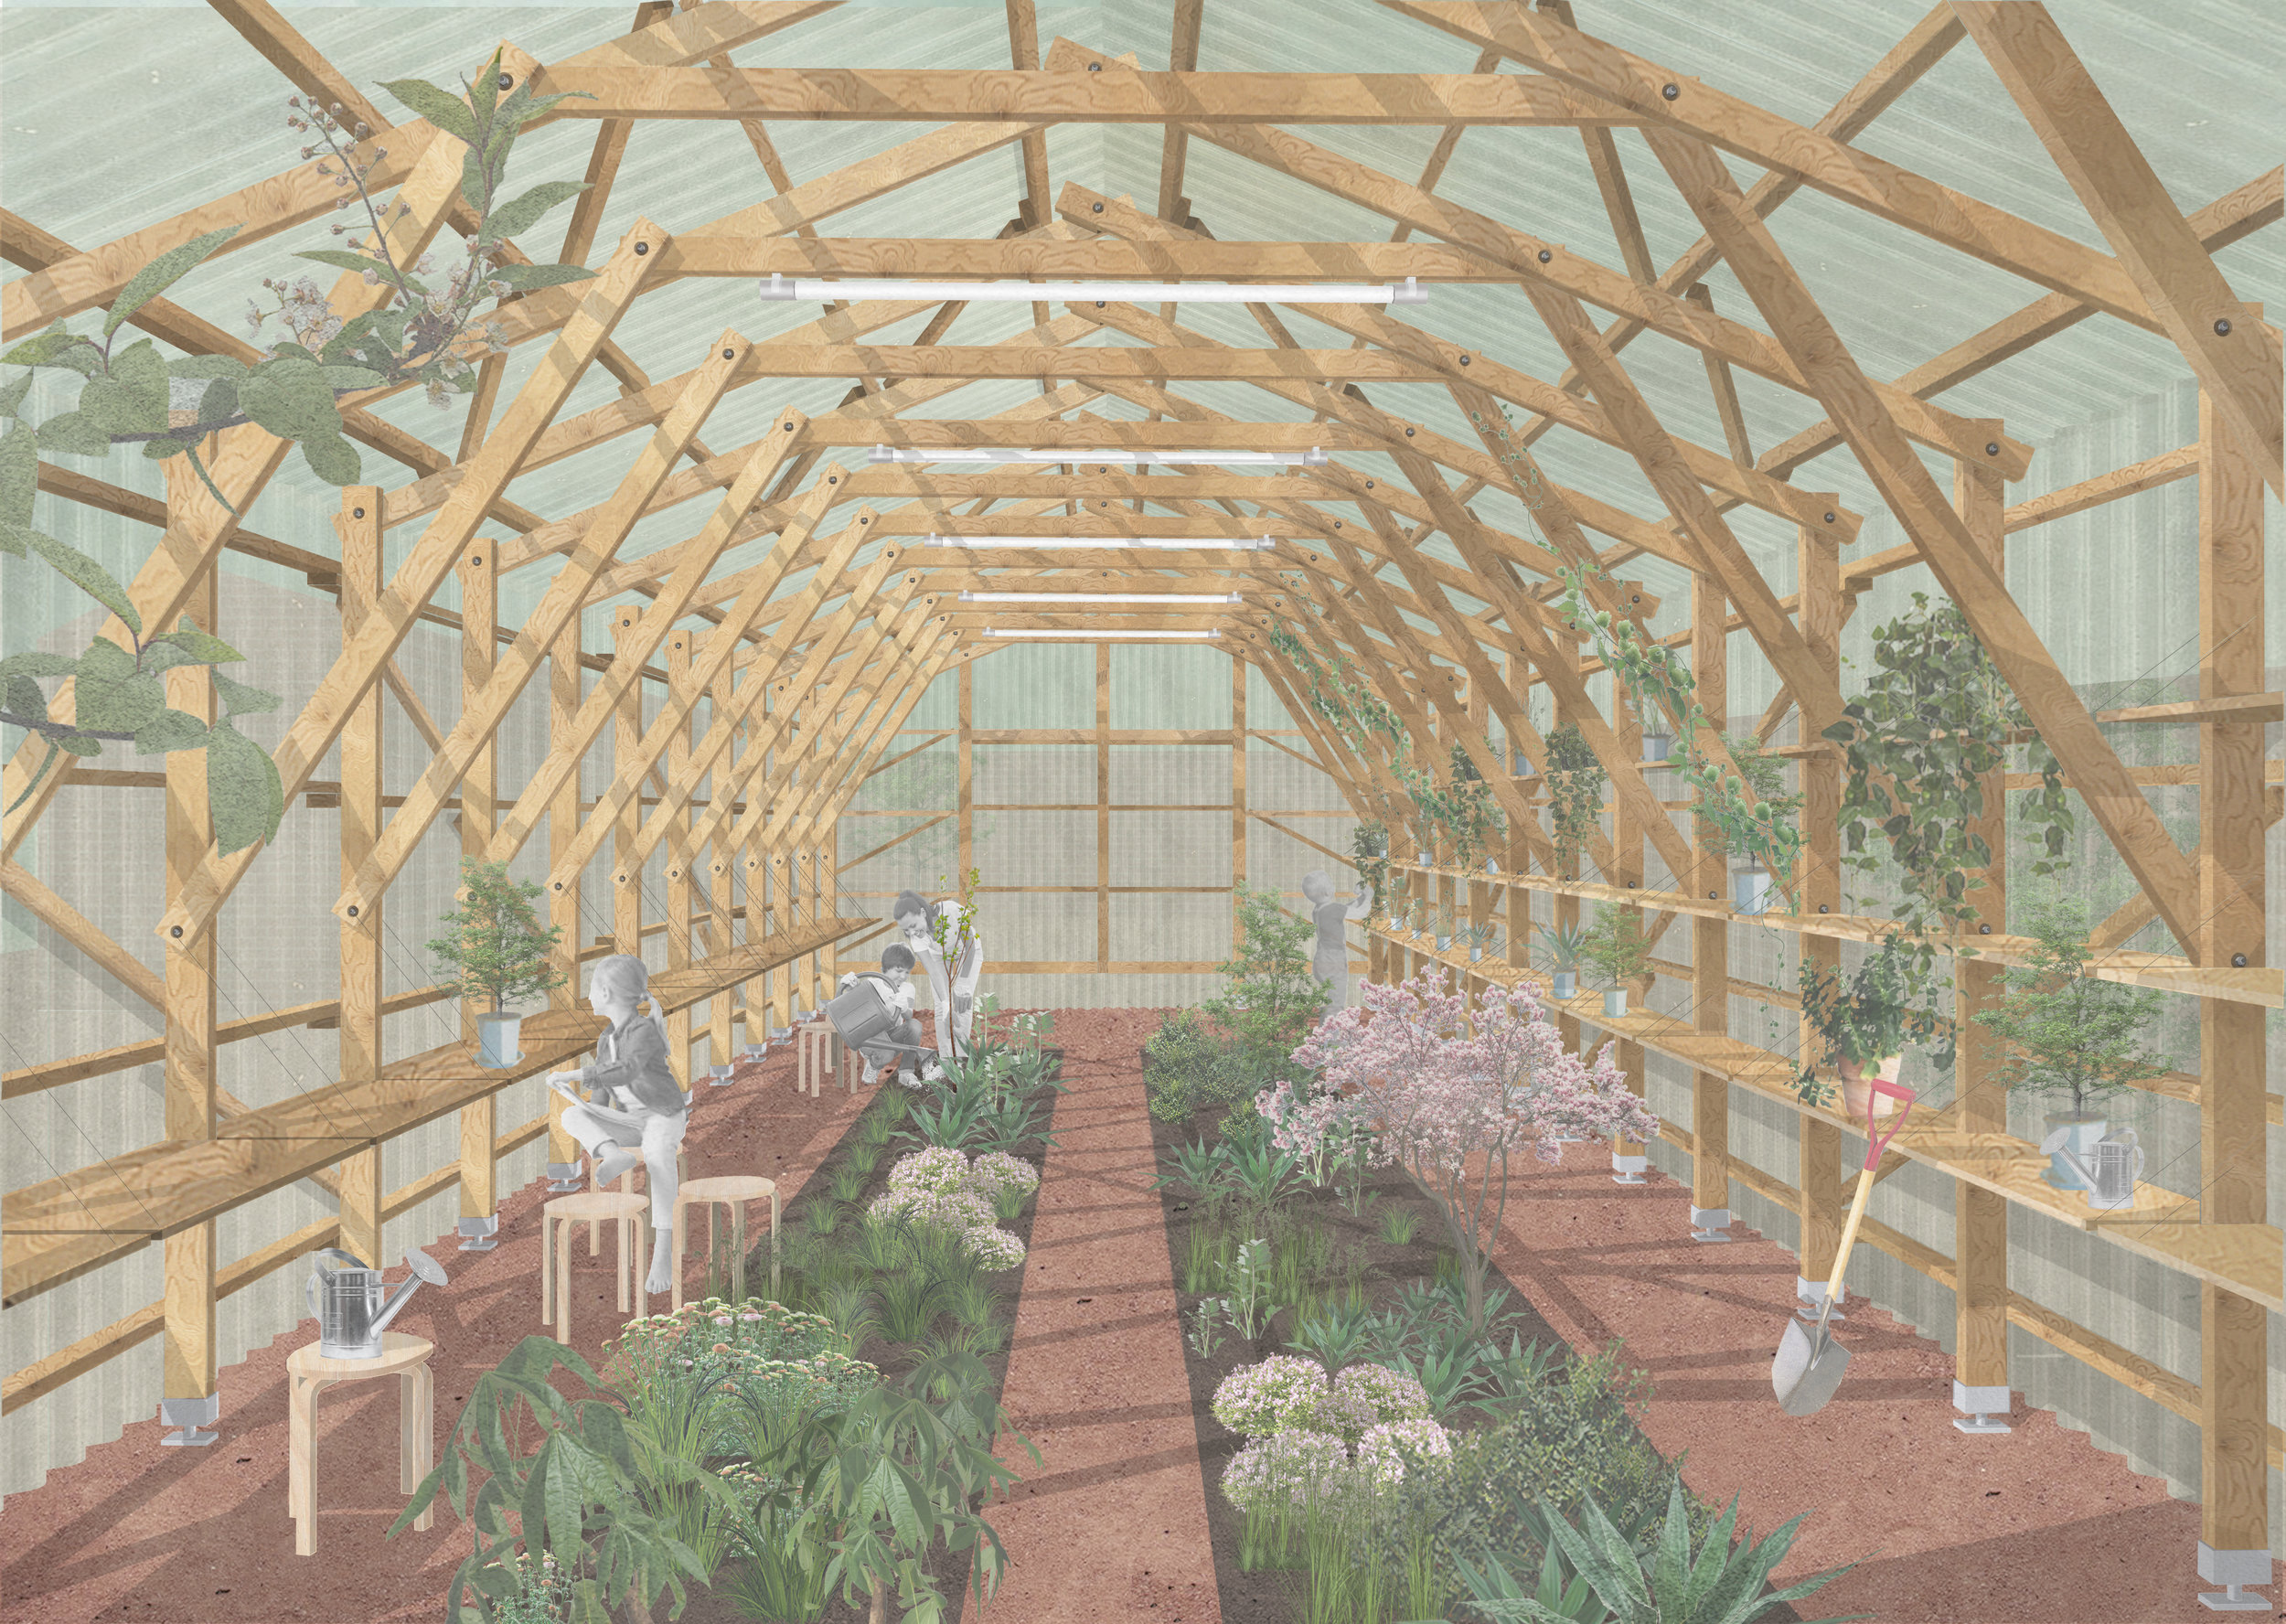 145_Greenhouse int.jpg